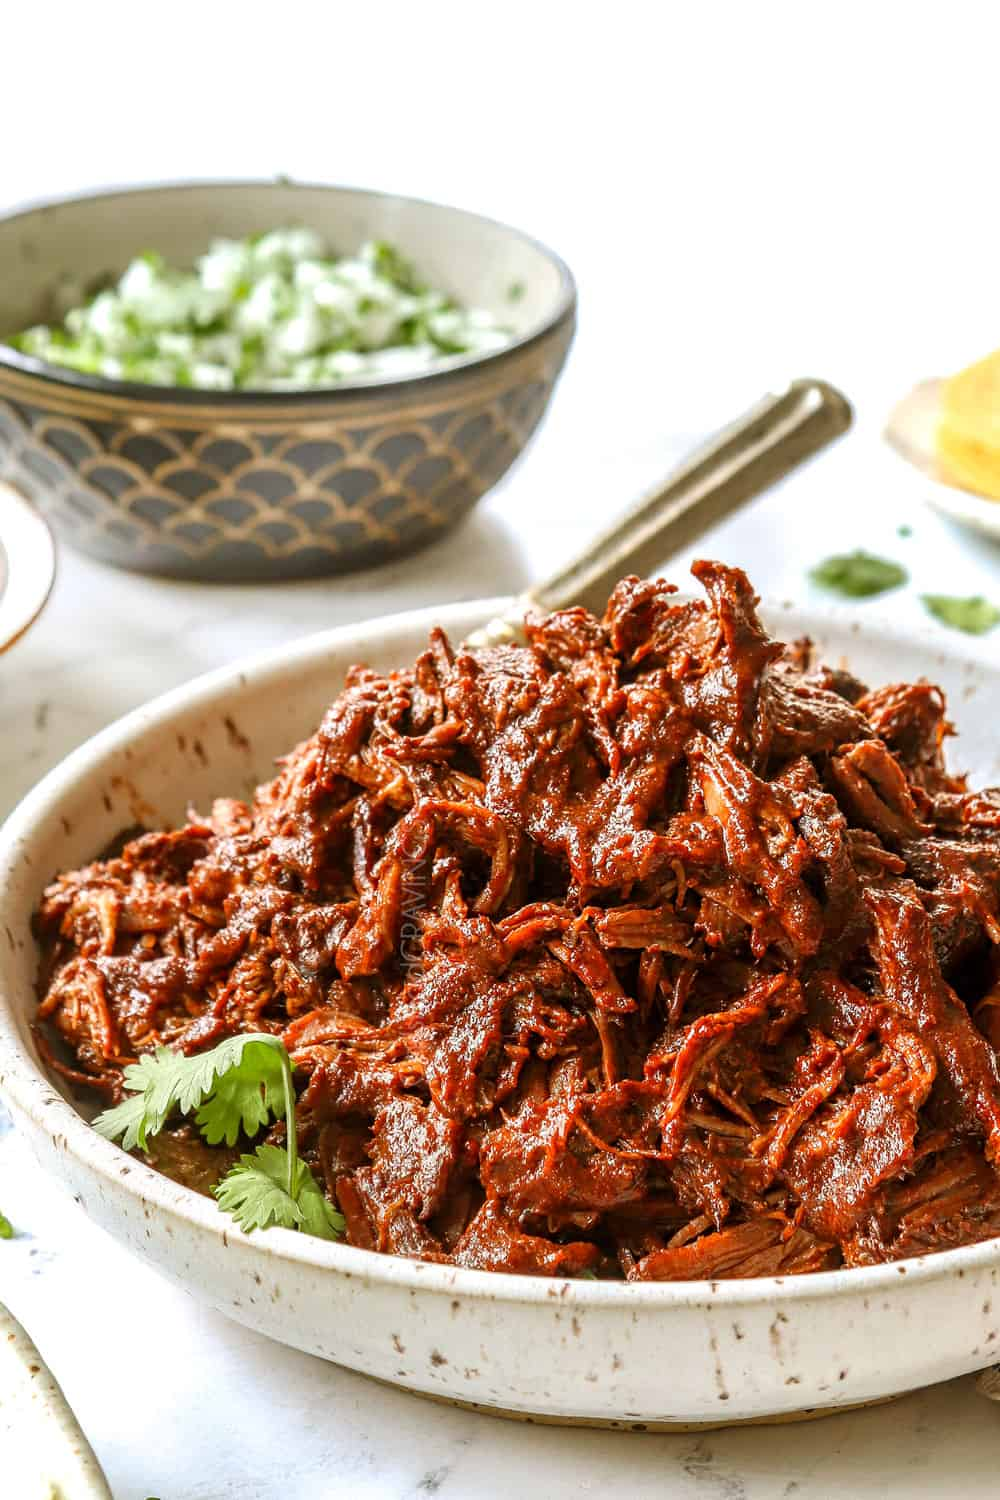 showing how to make birria recipe by adding shredded birria to a bowl